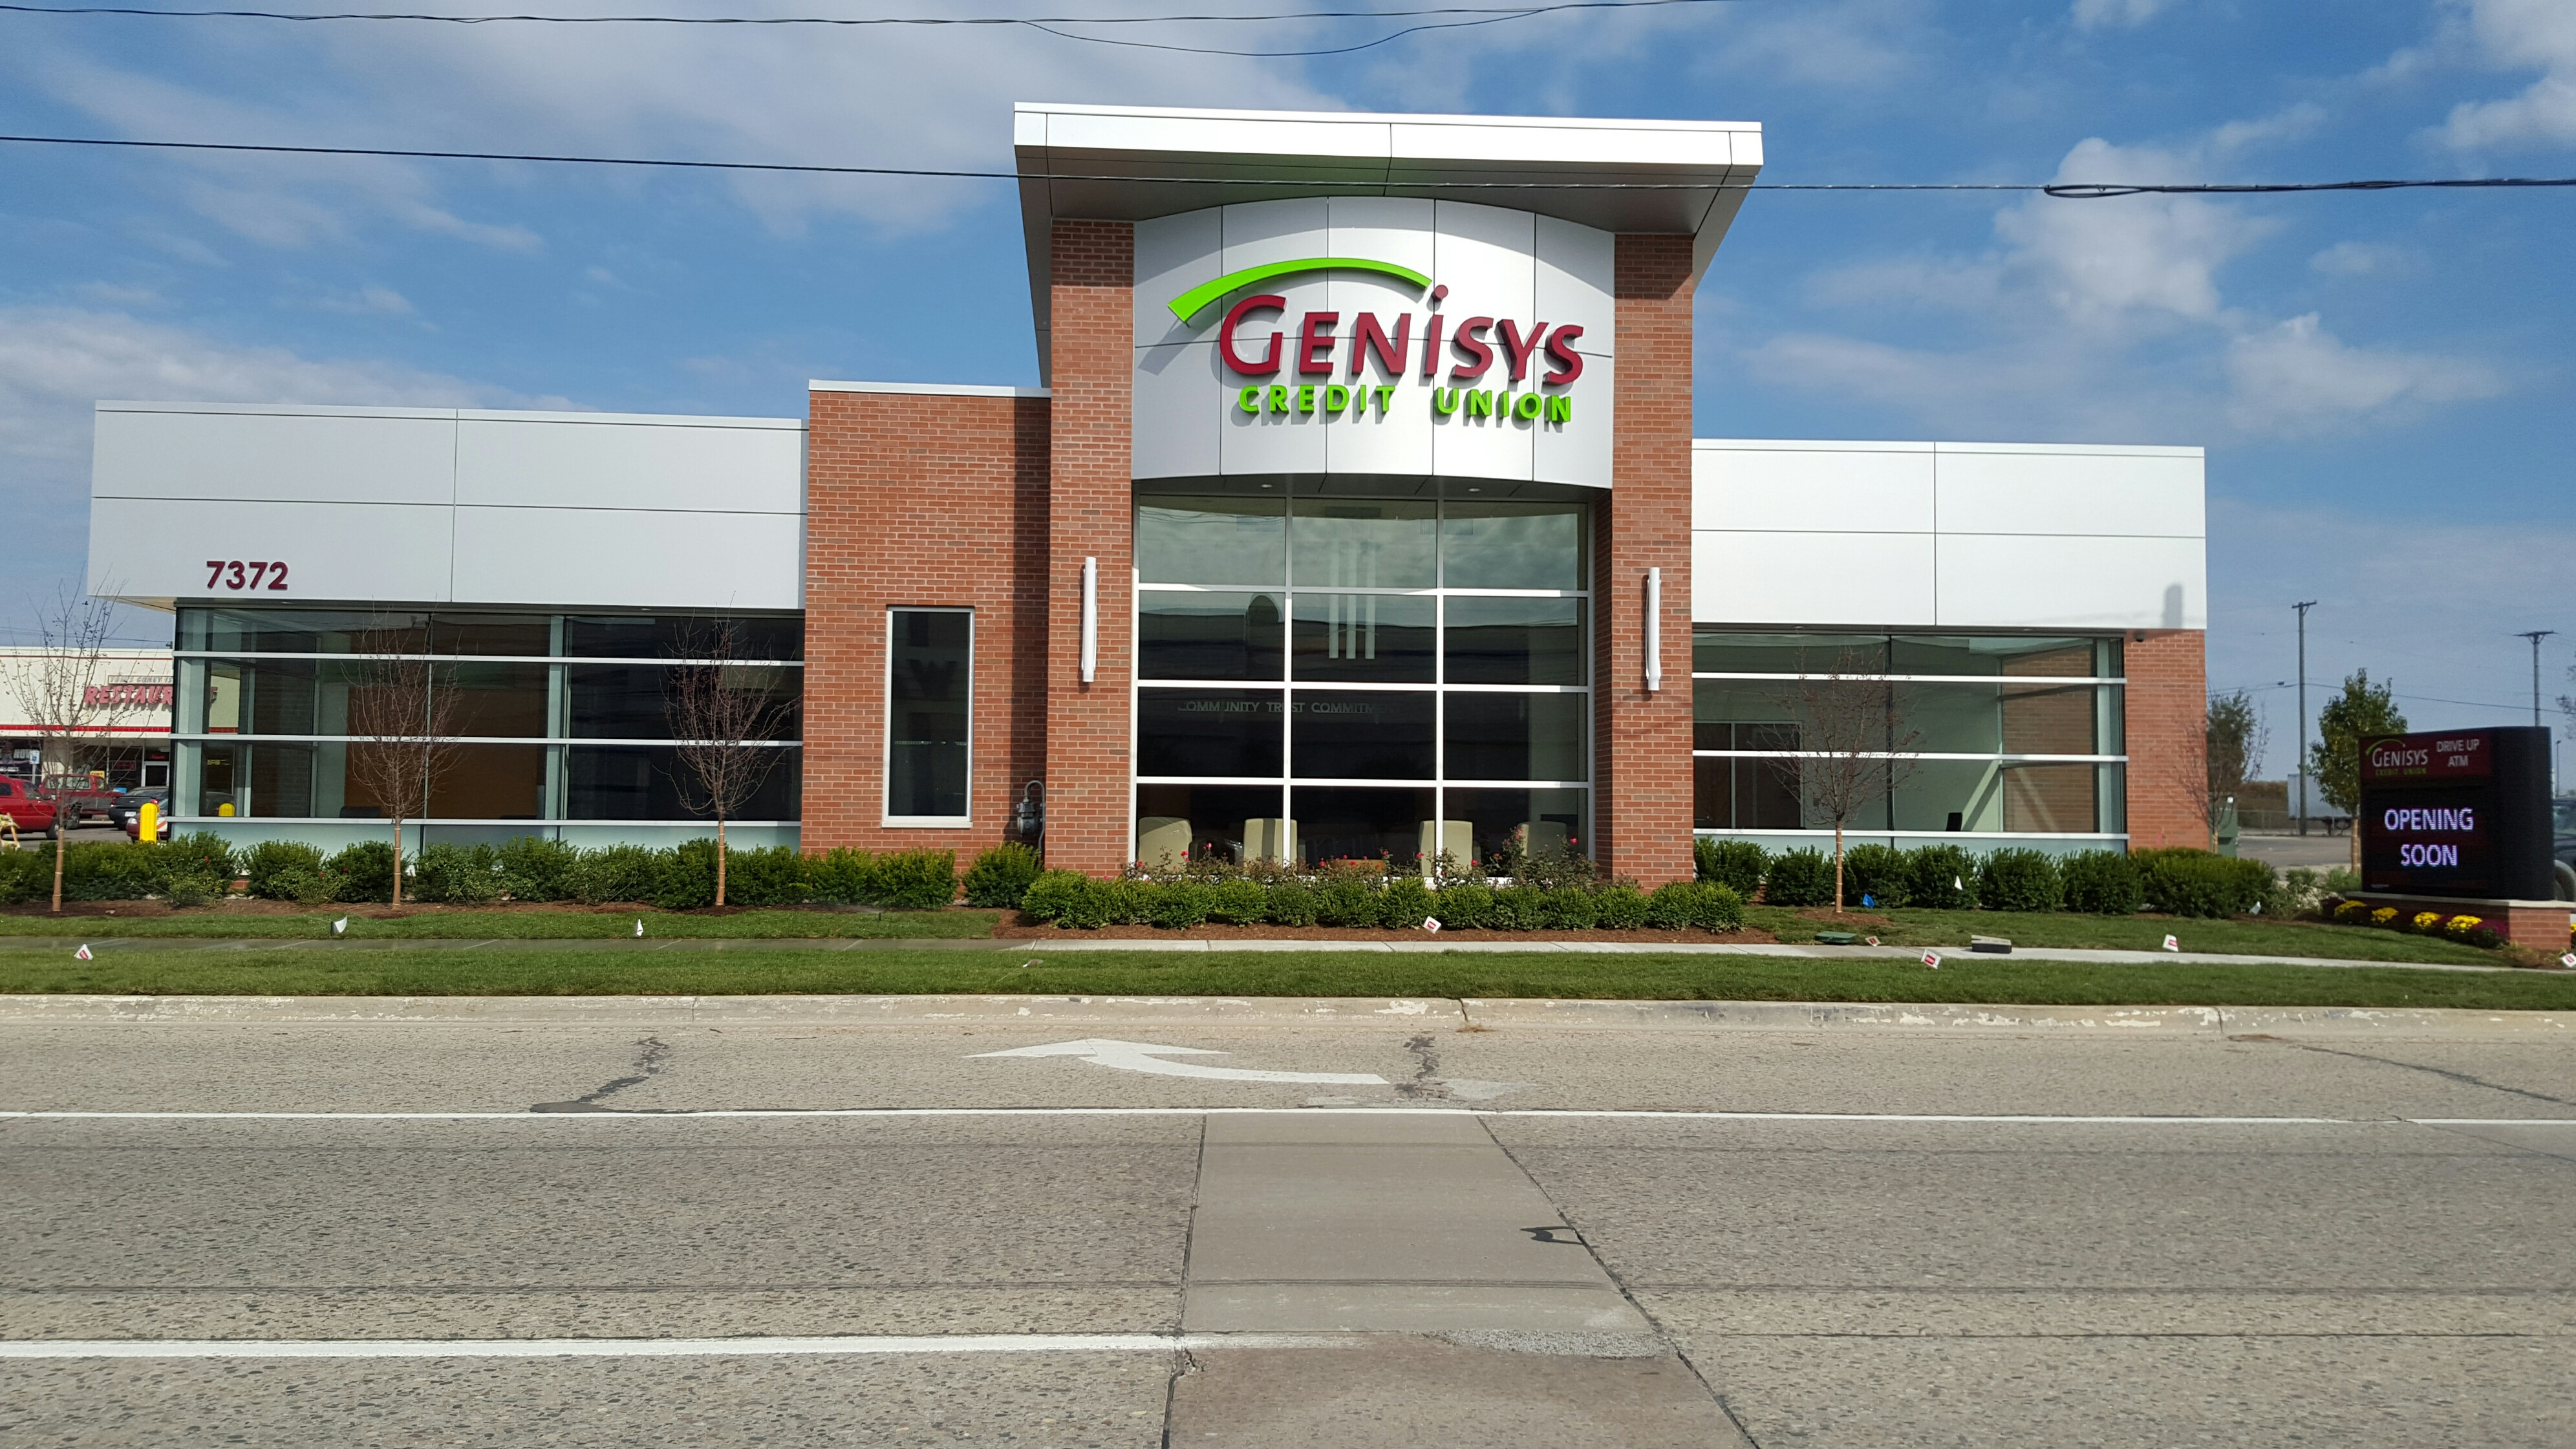 Genisys Credit Union in Waterford, MI - M-59 Branch